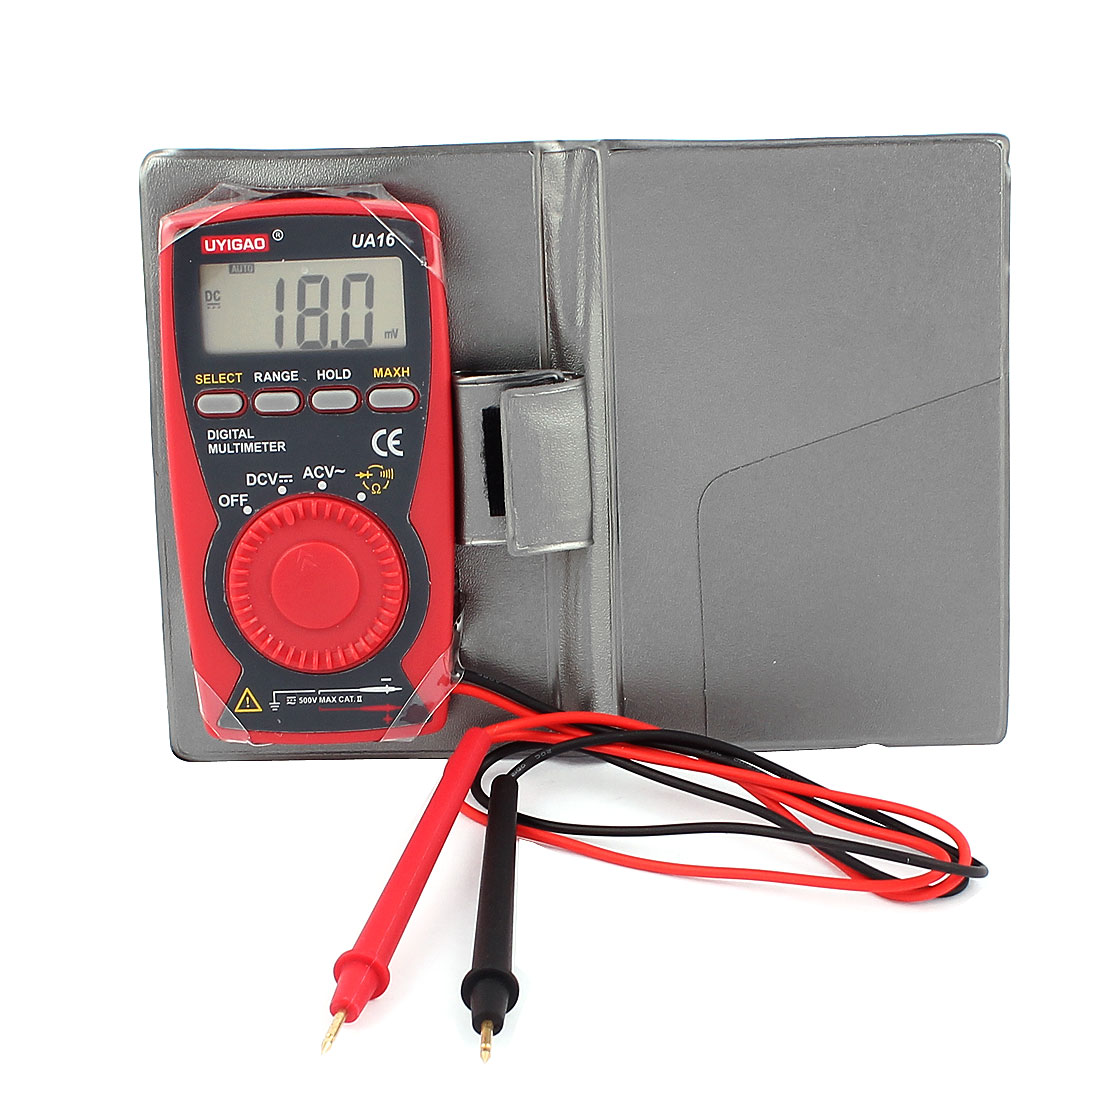 UYIGAO Authorized LCD Display AC DC Voltmeter Ohm Frequency Meter Ultra-Thin Digital Multimeter